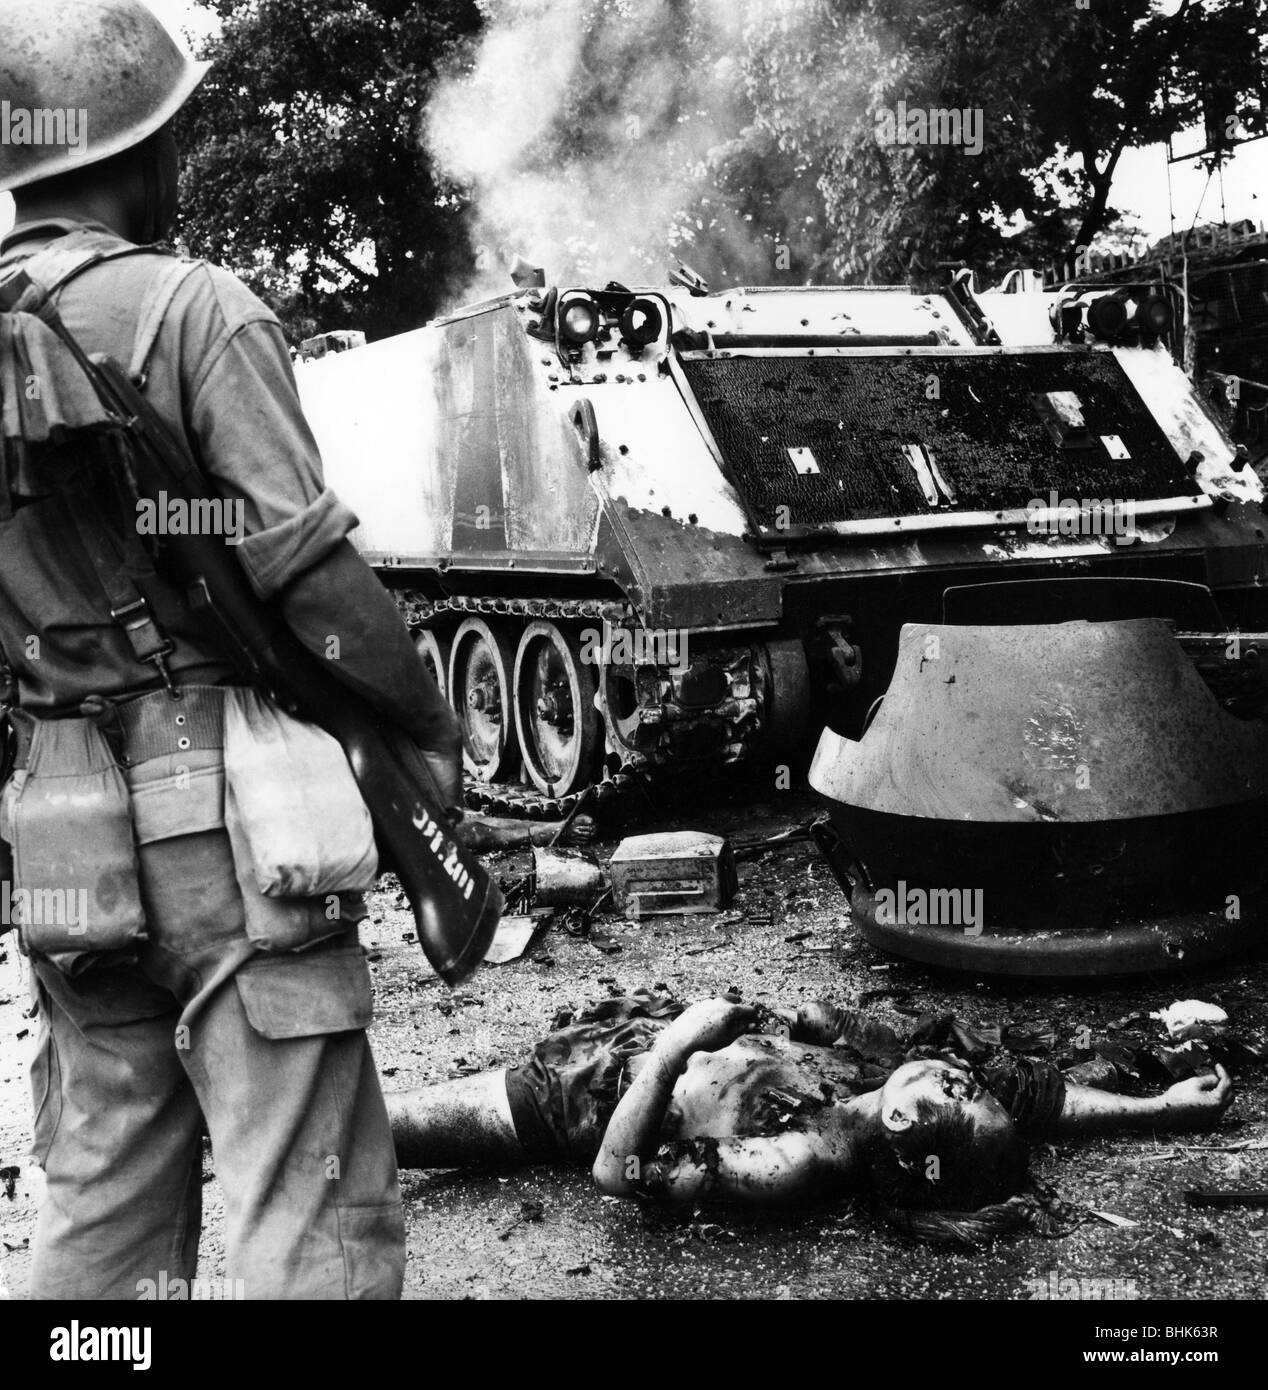 Stock photo events vietnam war dead bodies and a destroyed military vehicle after a viet cong attack on phnom penh the capital of cambodi